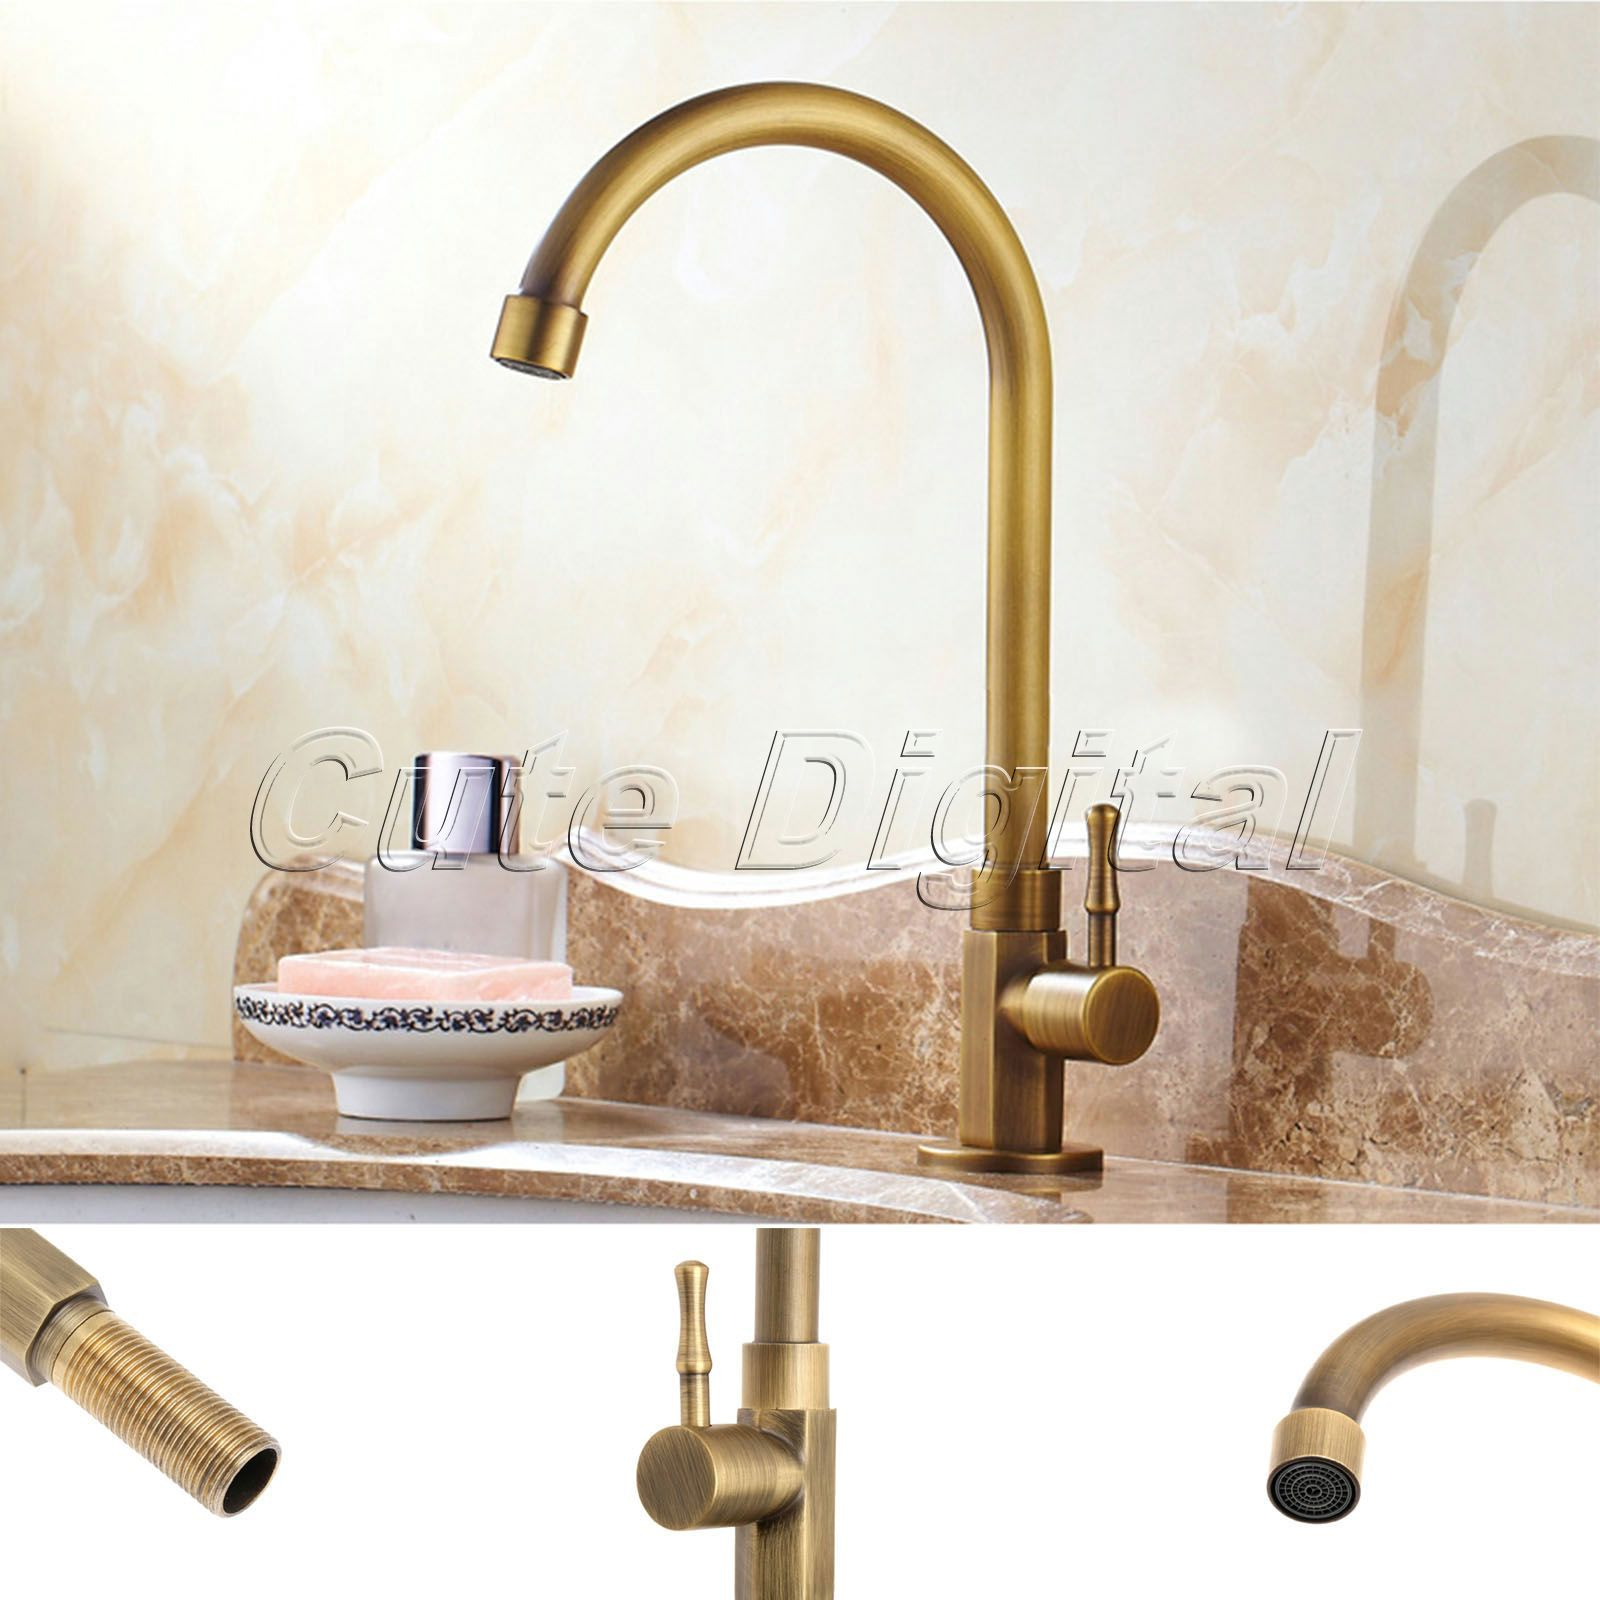 Aliexpress.com : Buy Antique Brass Luxury Bathroom Sink Faucet ...